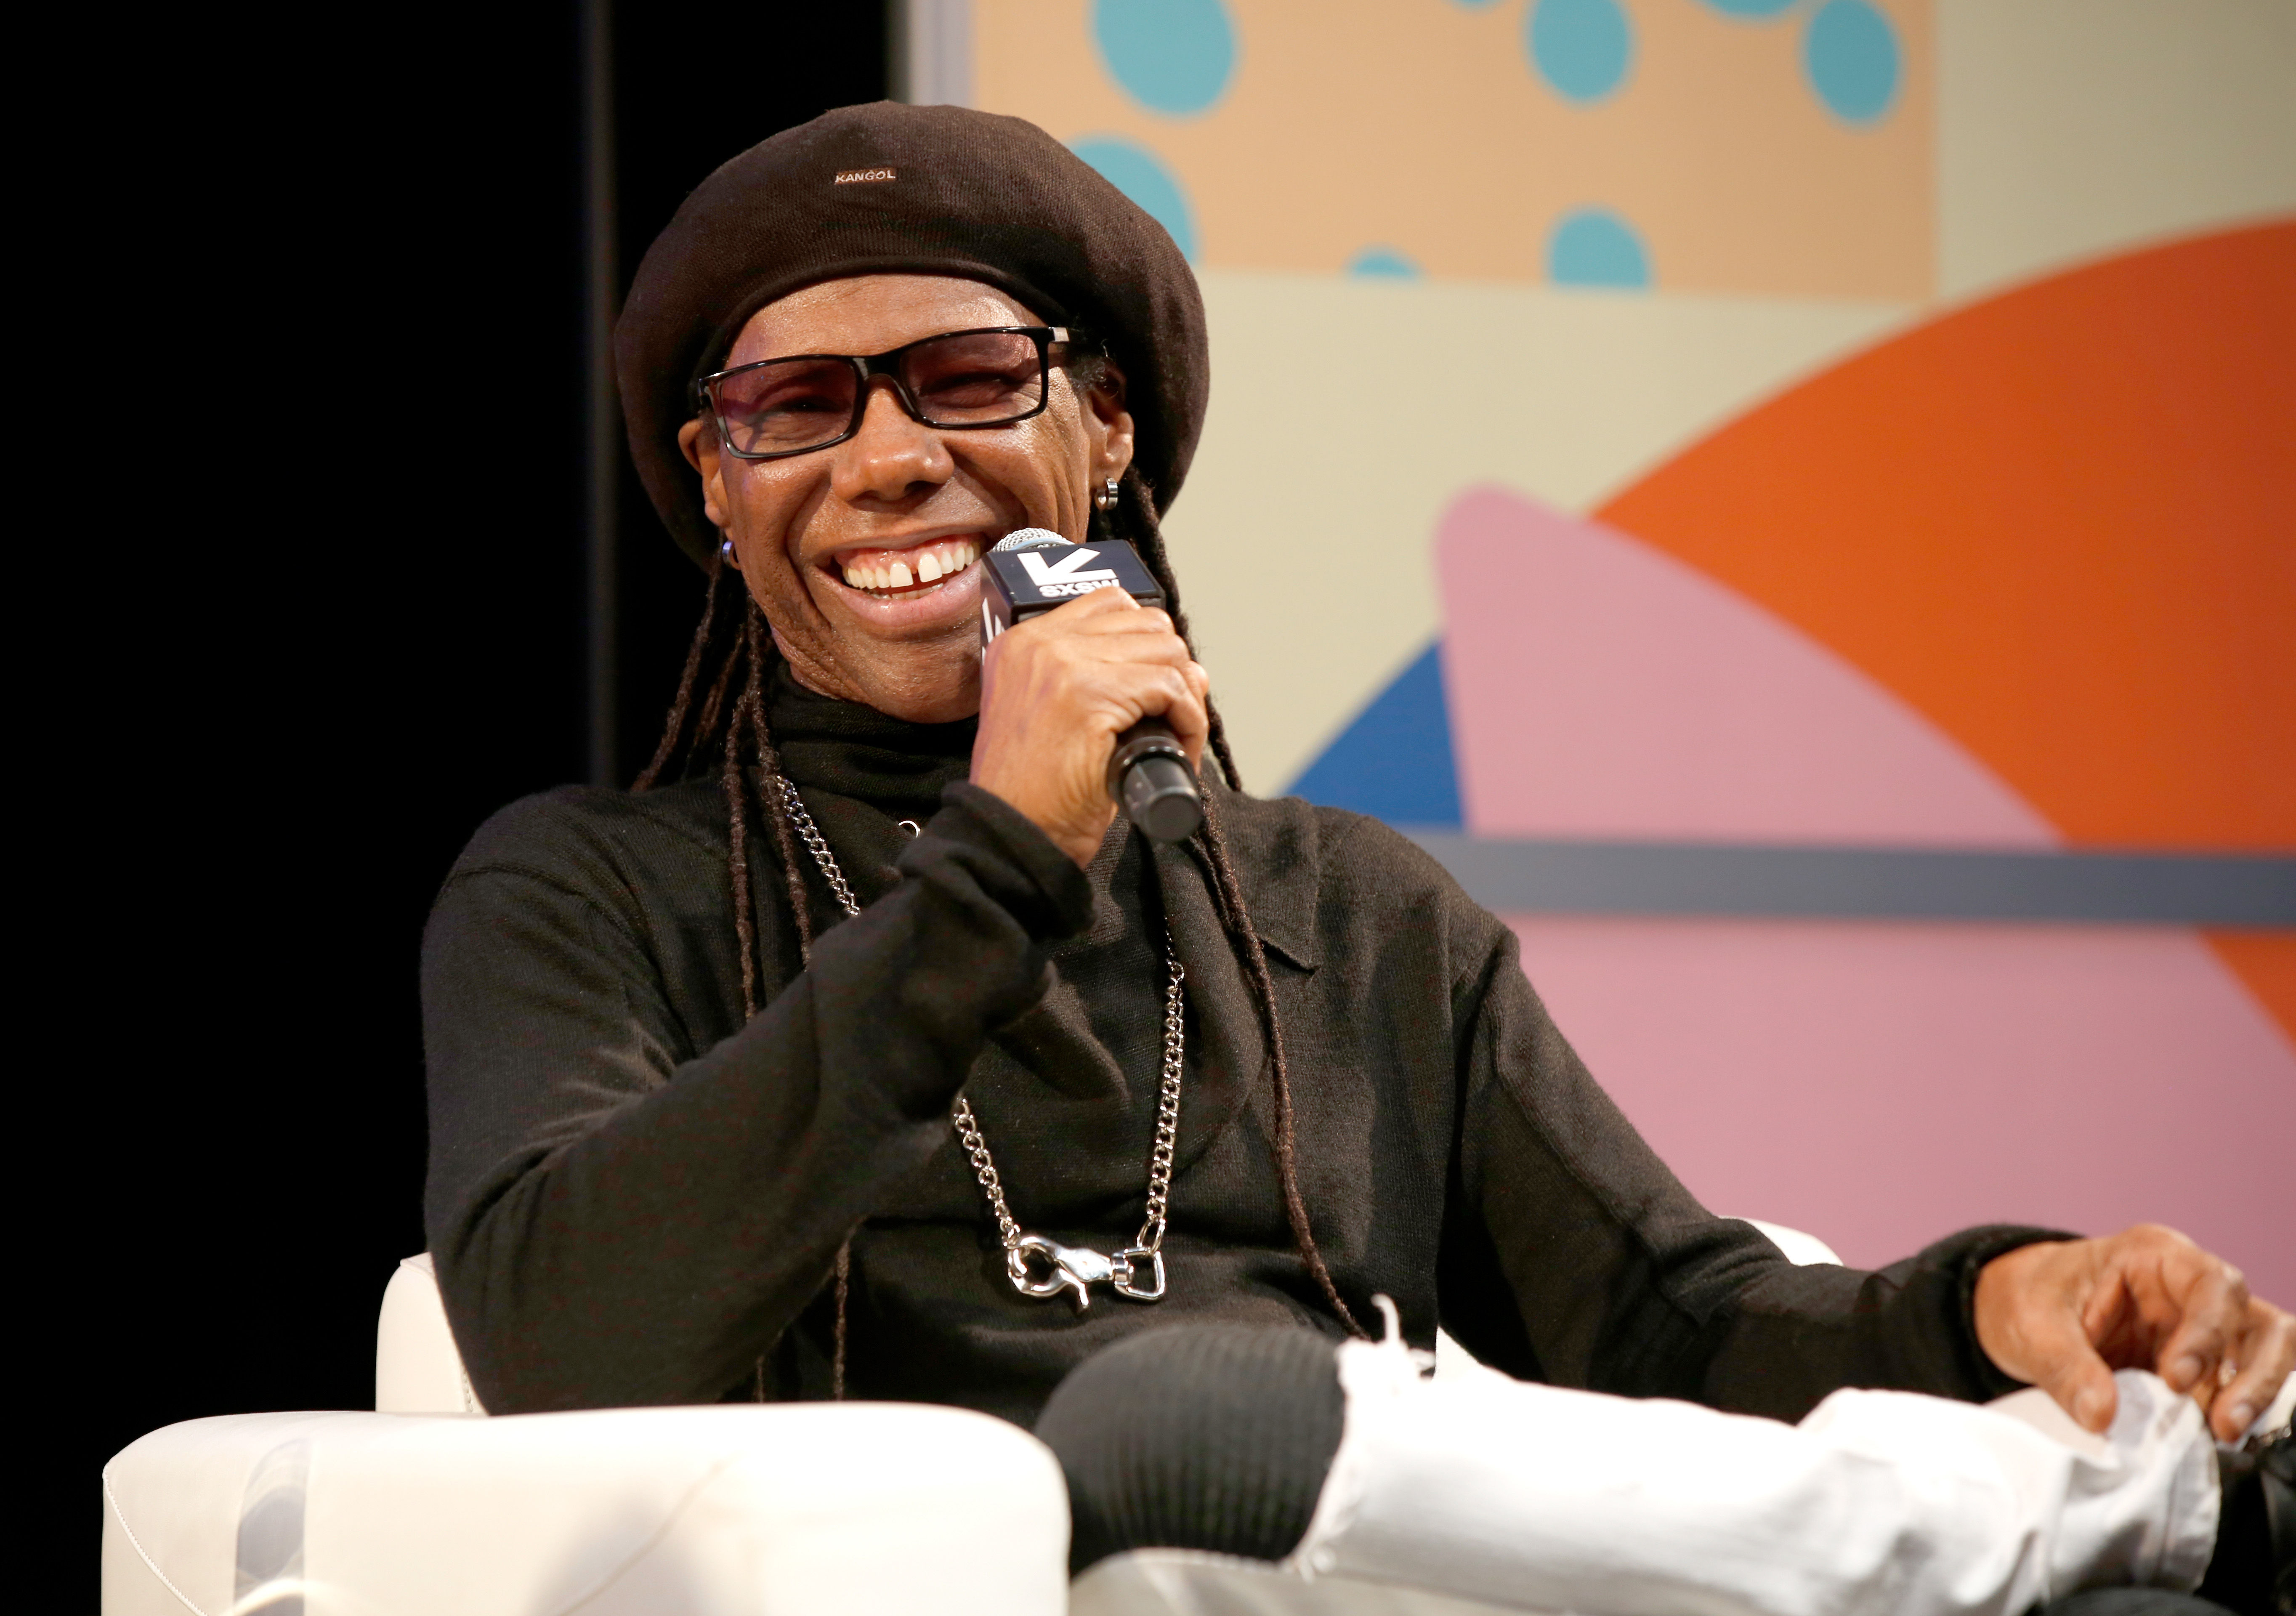 Nile Rodgers | Photo by Sean Mathis/Getty Images